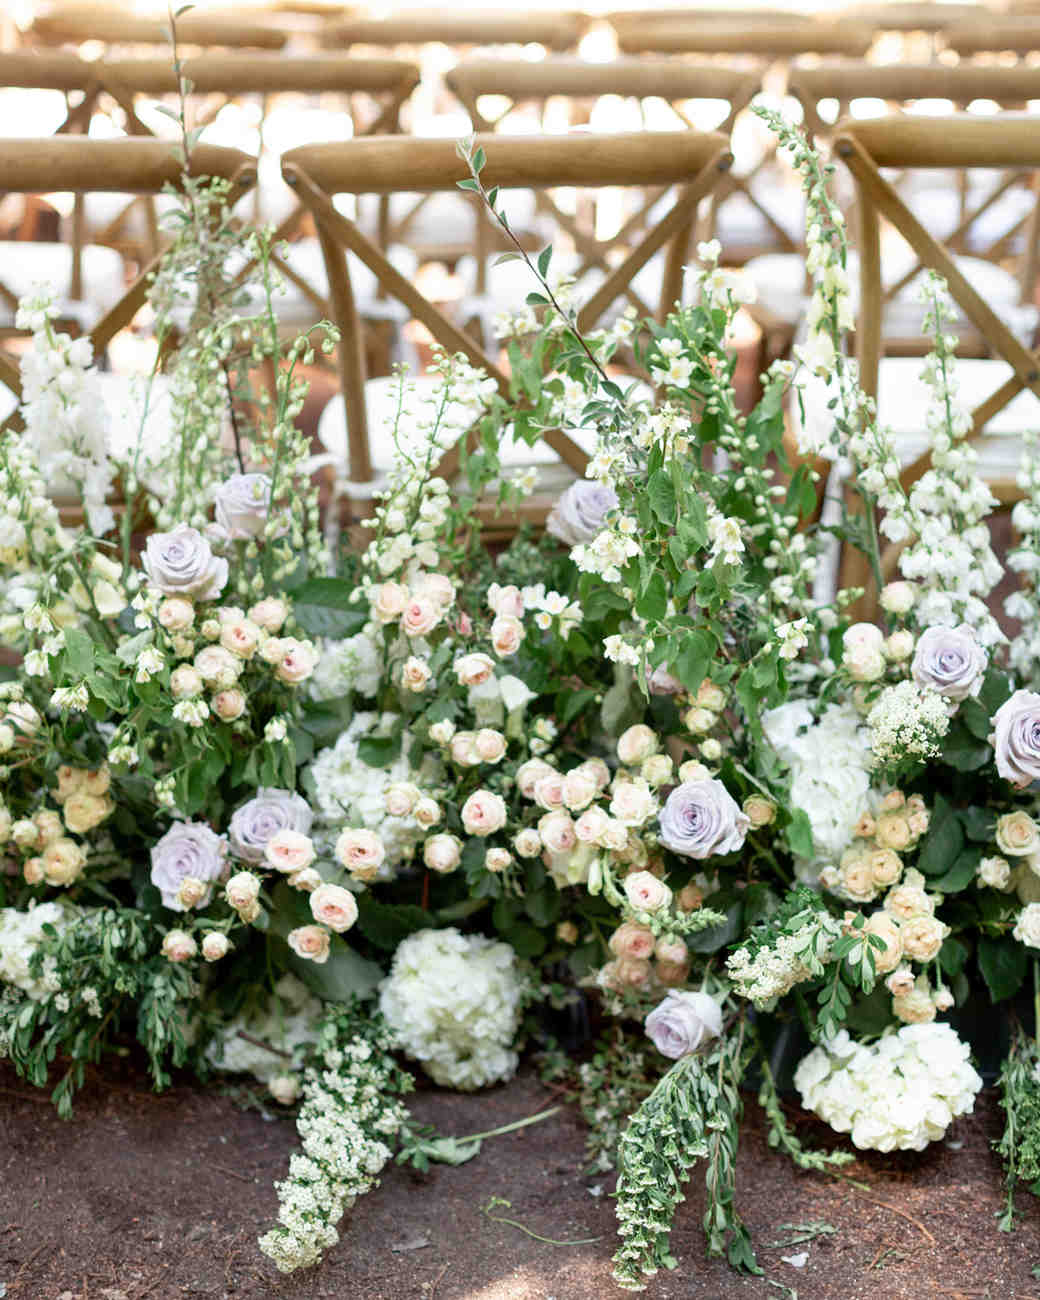 last row ceremony chair decorations roses hydrangeas and greenery